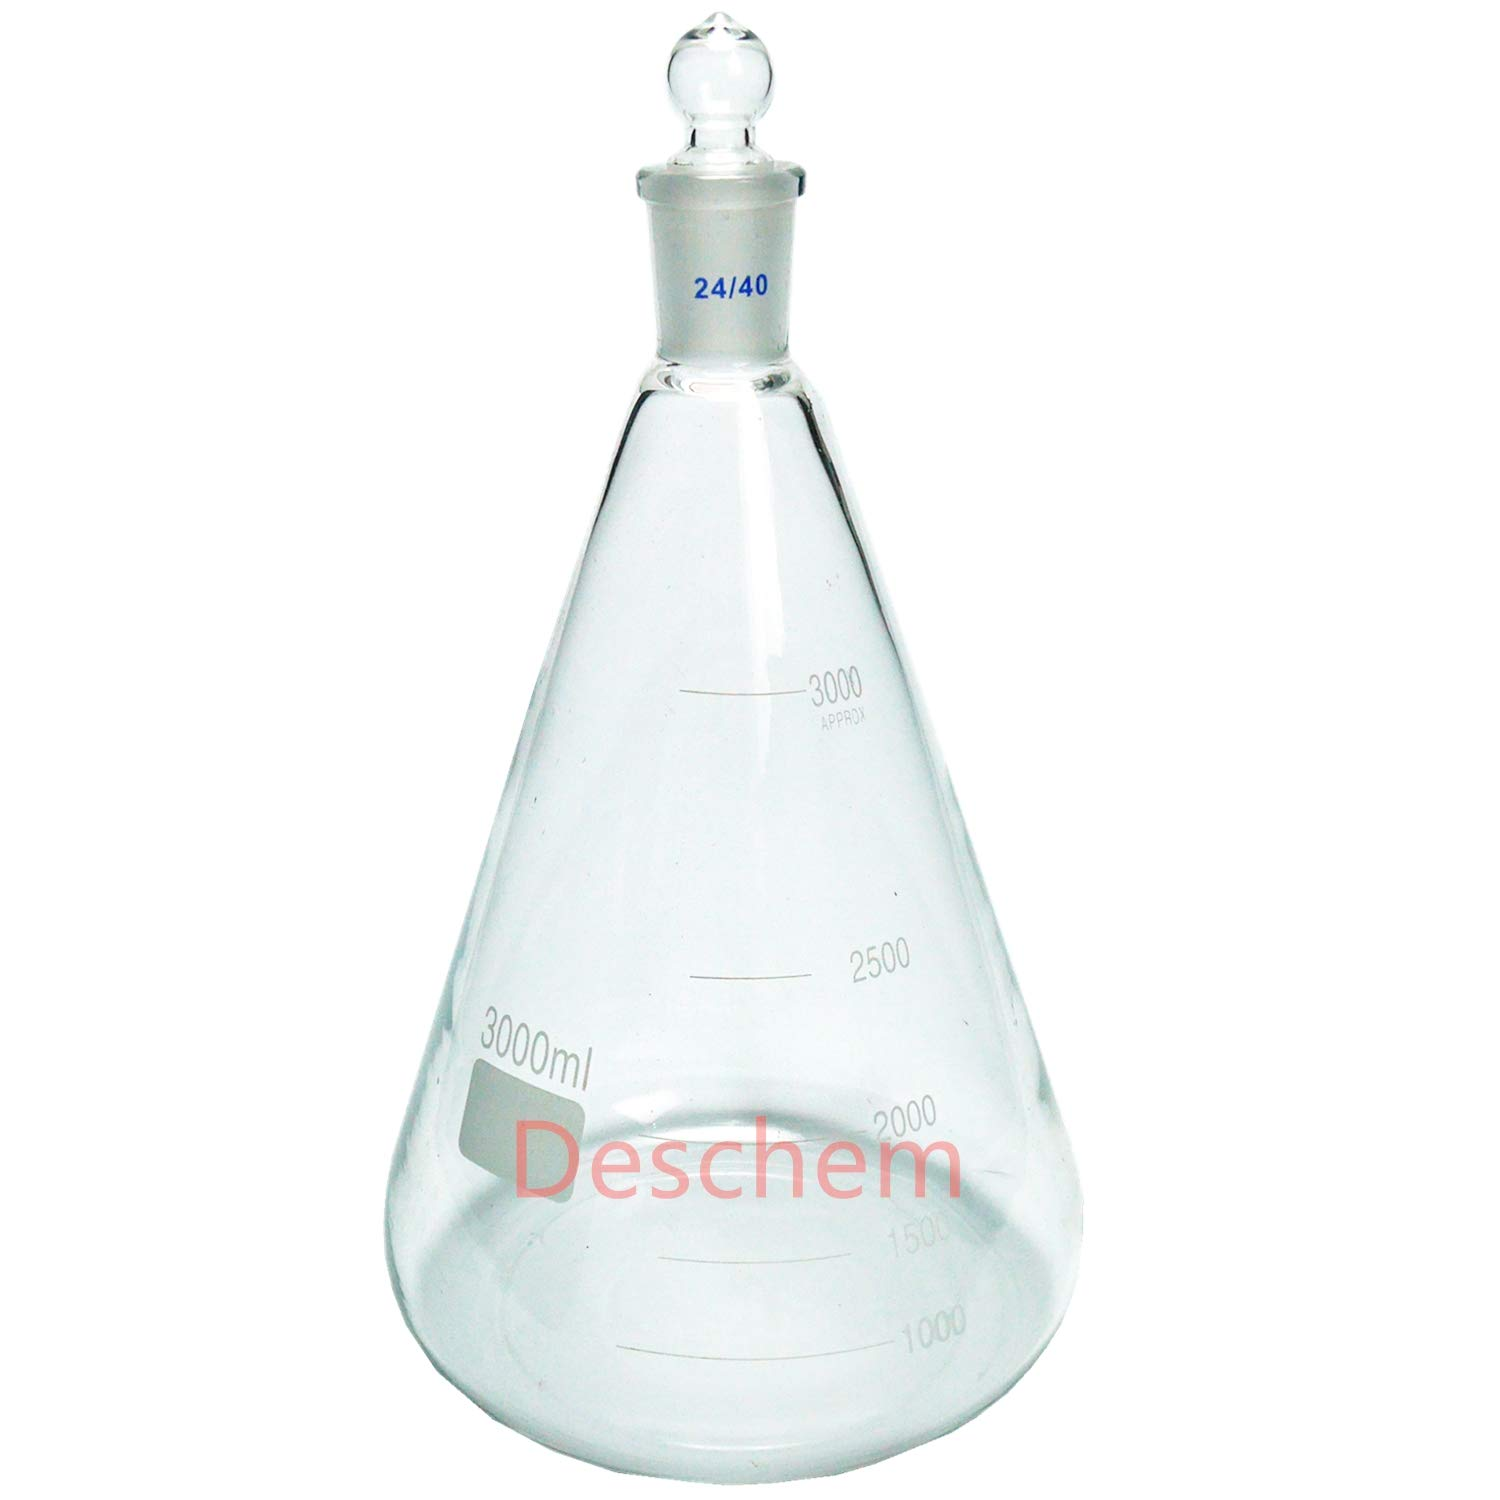 Deschem Glass Erlenmeyer Flask,Lab Conical Bottle with 24//40 Ground Joint Stopper